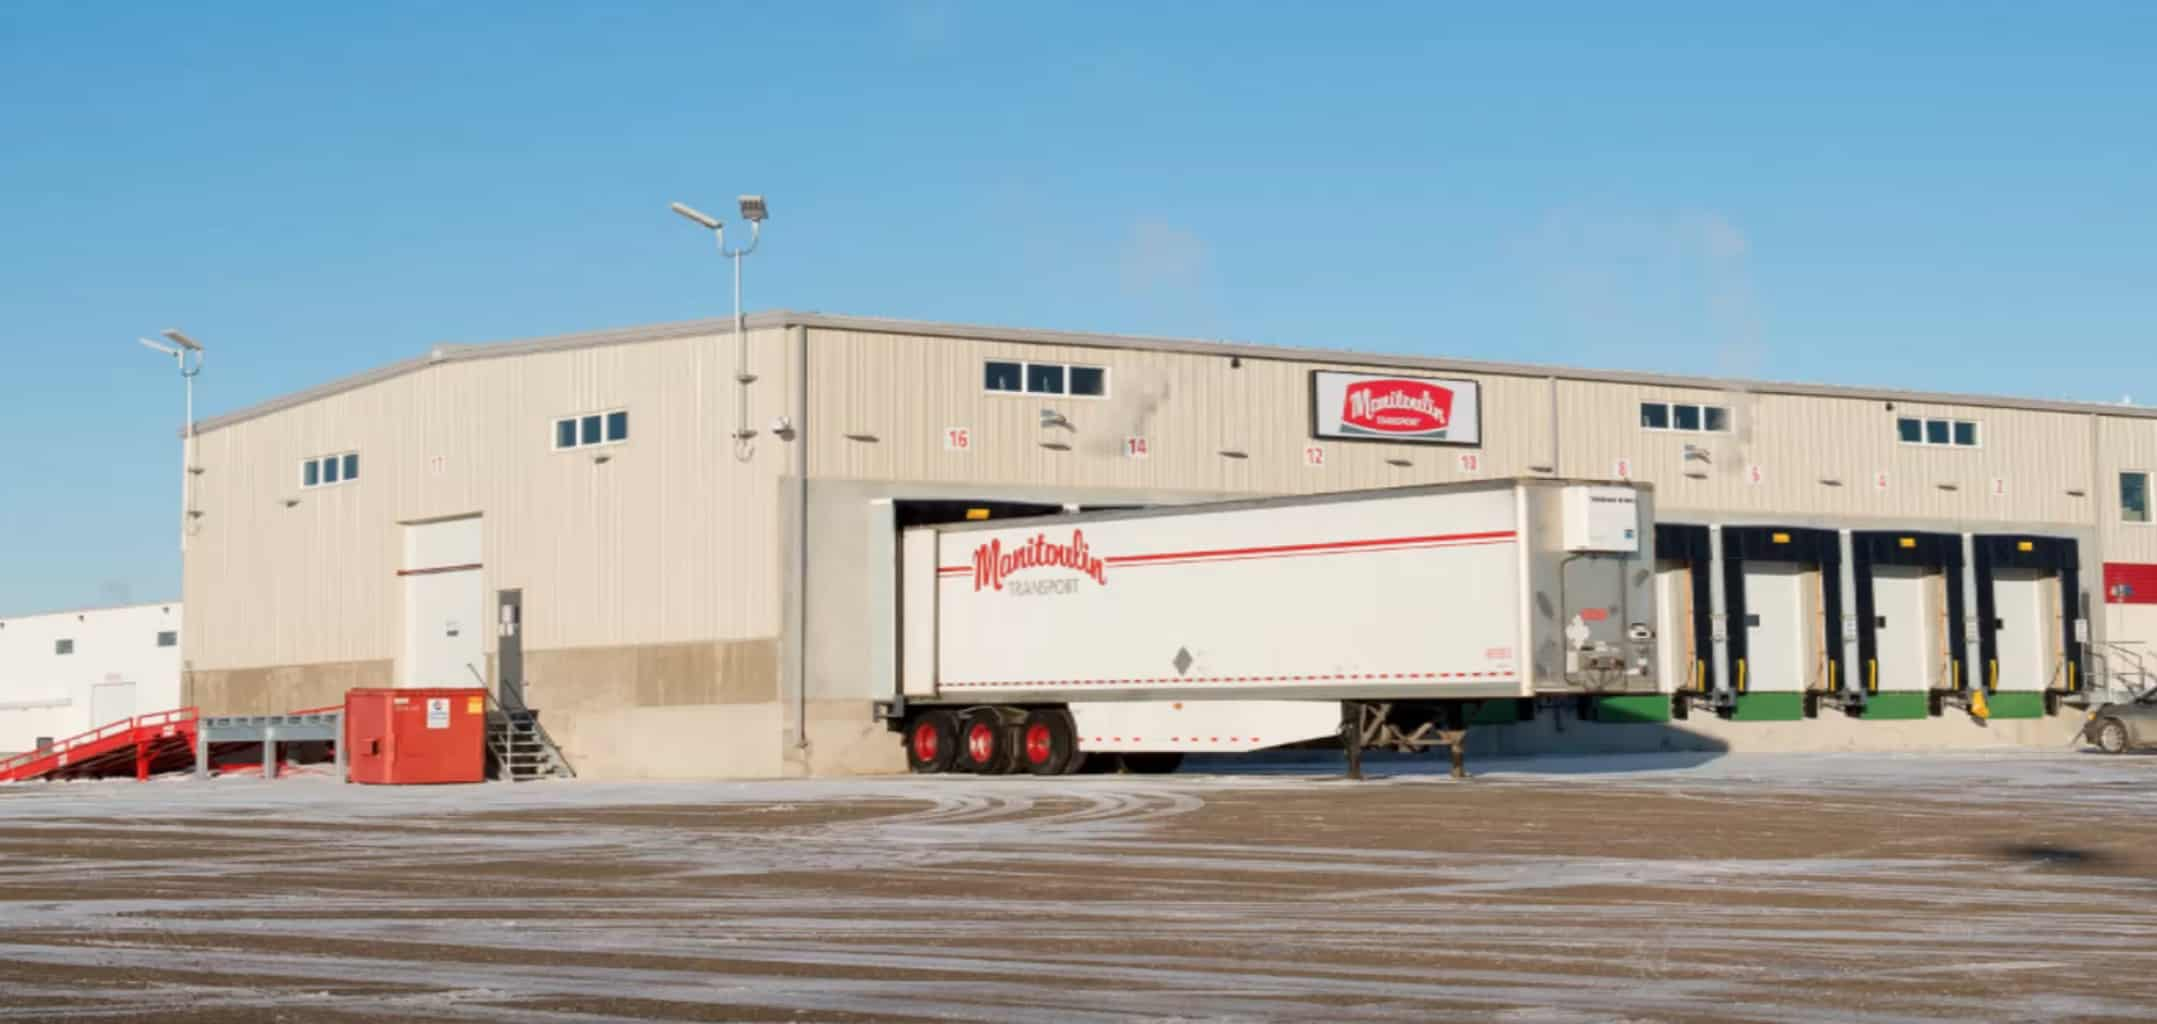 Manitoulin grows Canada logistics business with Trident